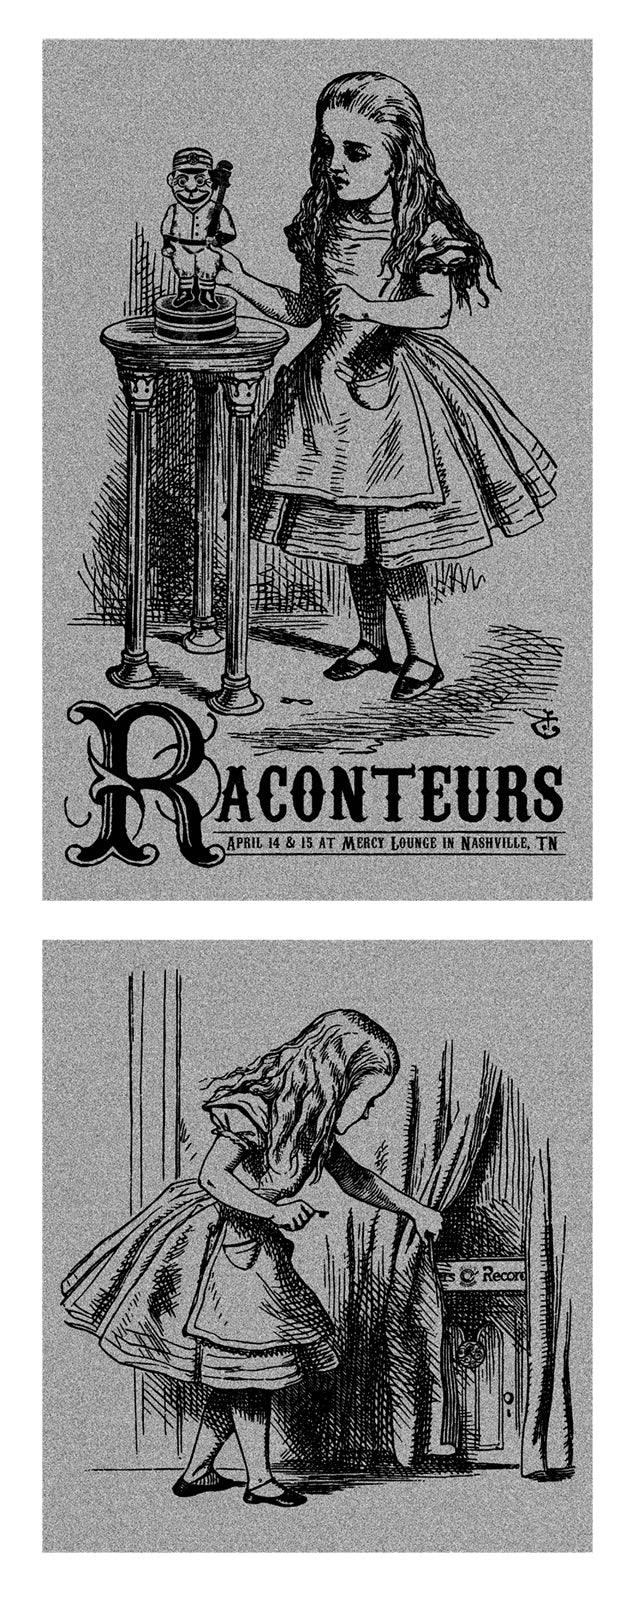 The Raconteurs Nashville 2008 Set of 2 Handbills Metallic Silver